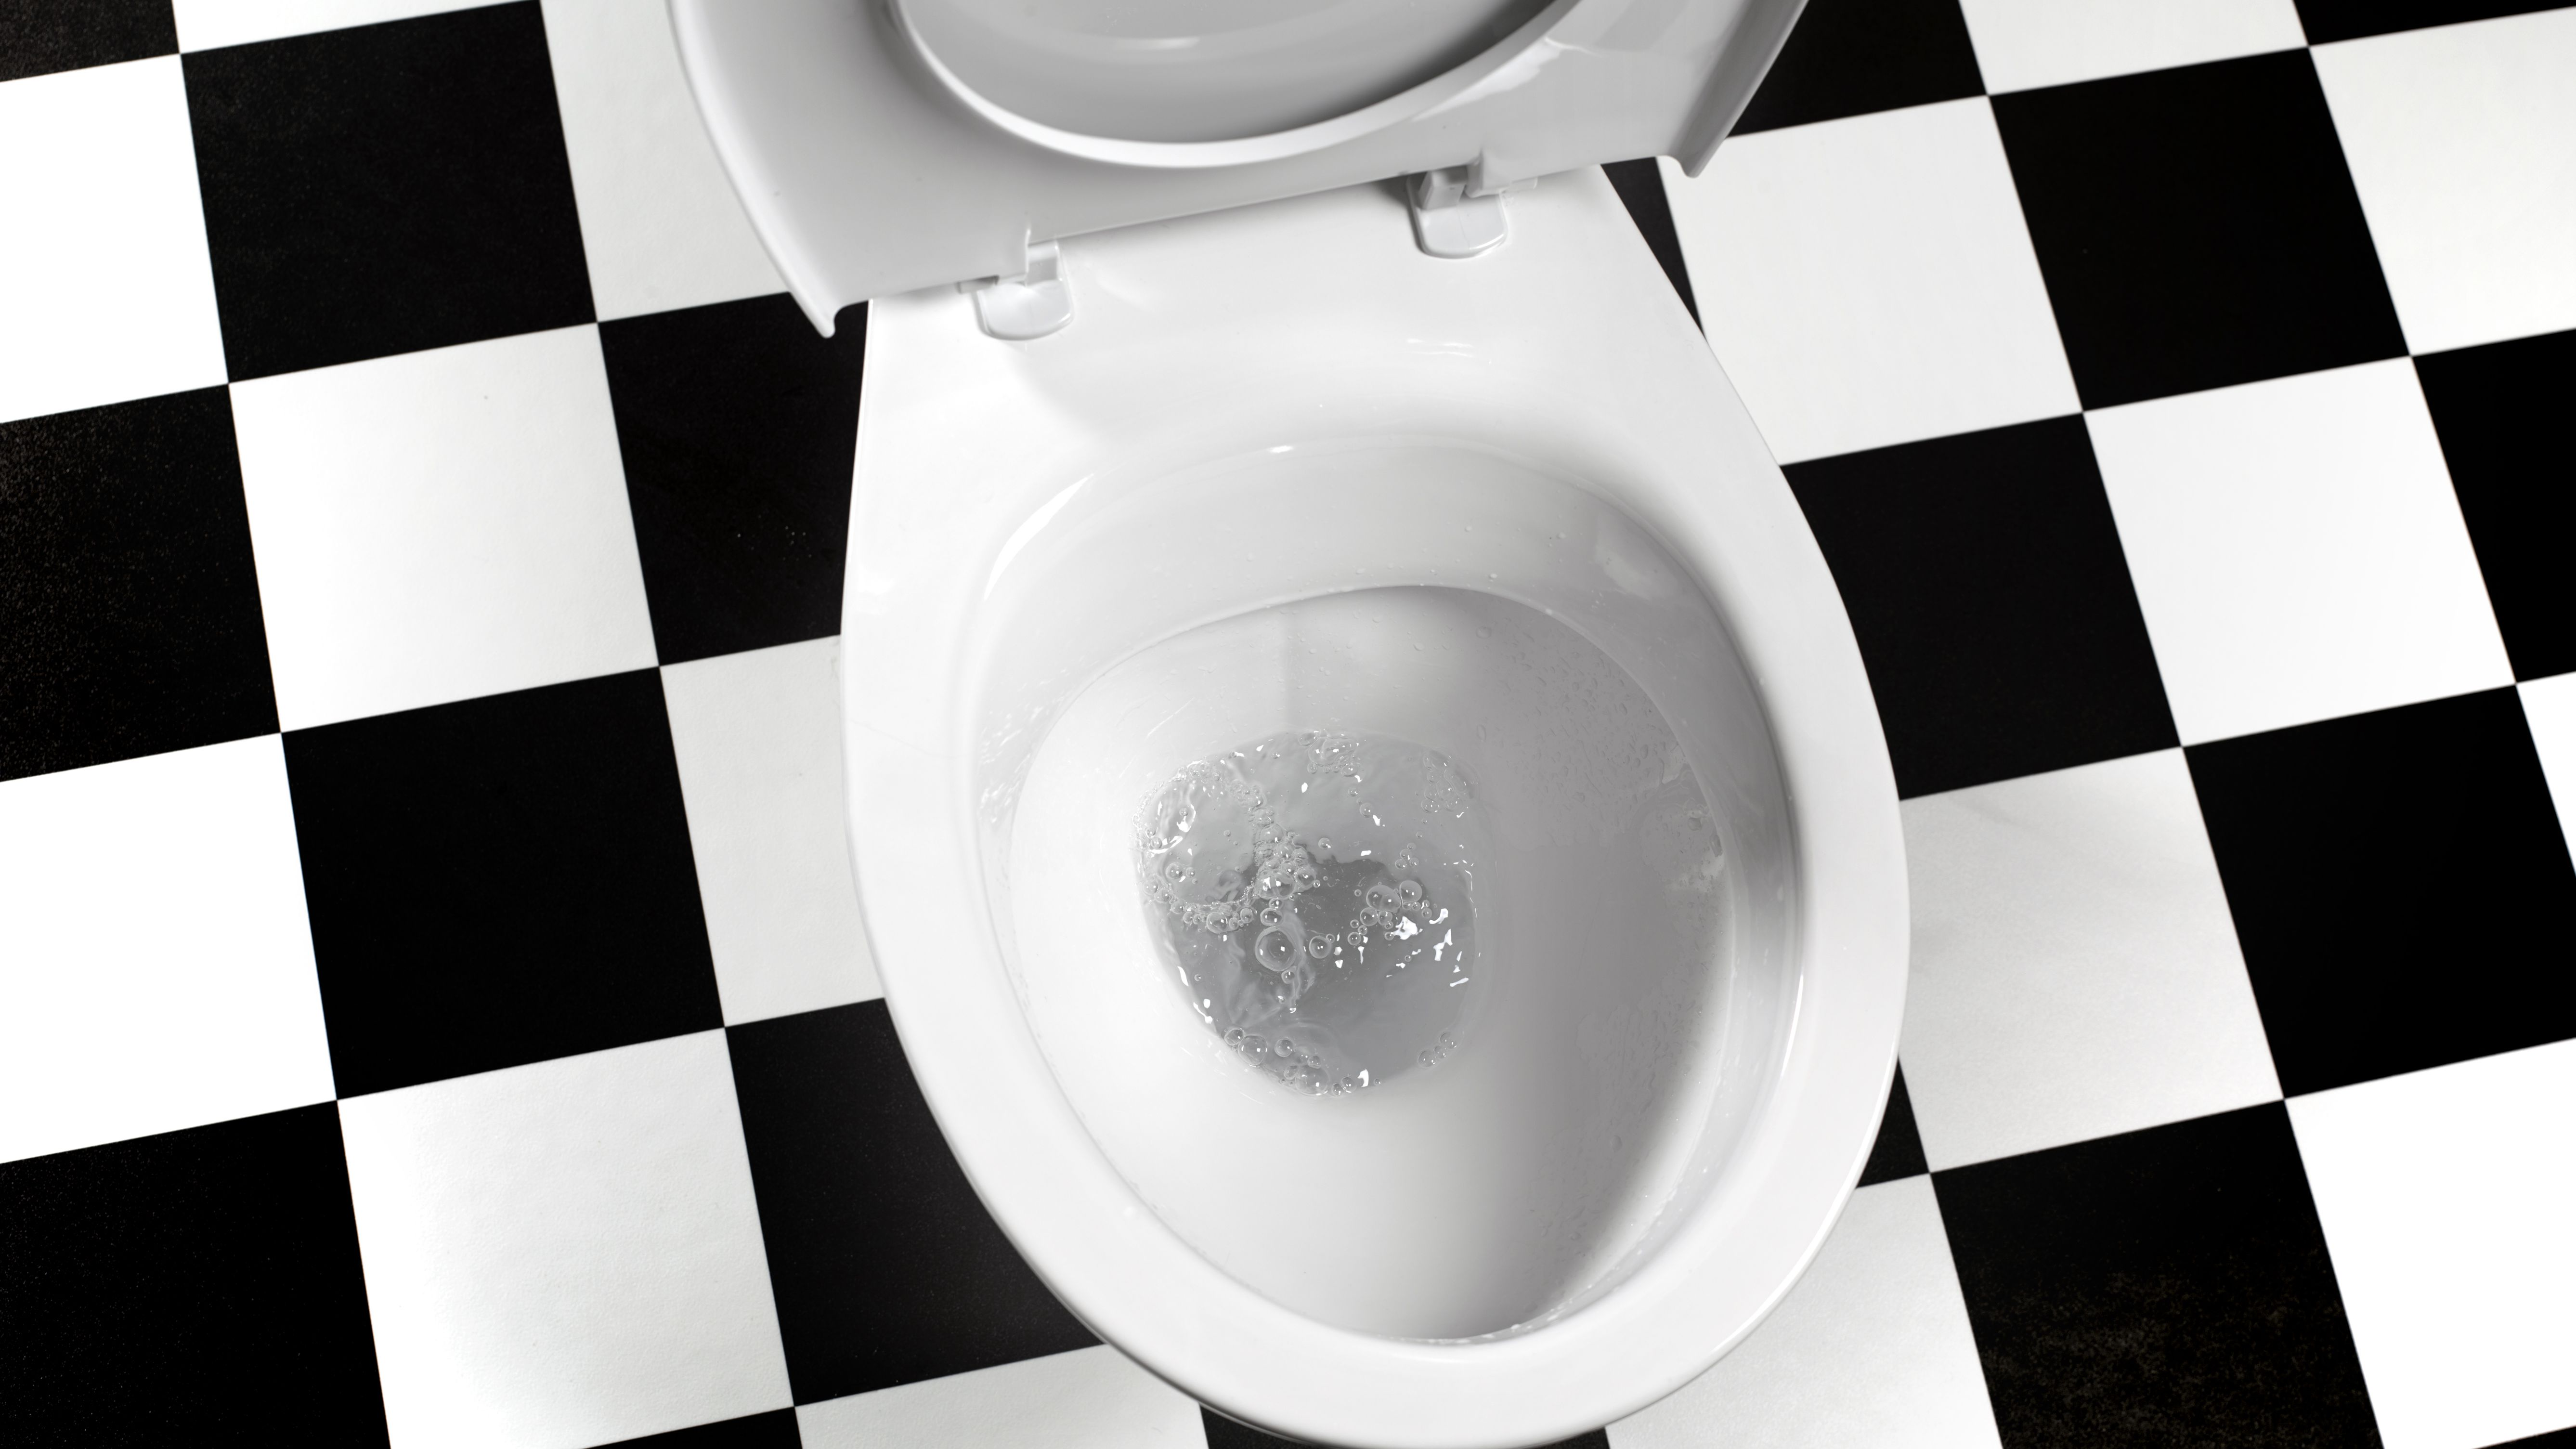 How To Stop A Running Toilet And